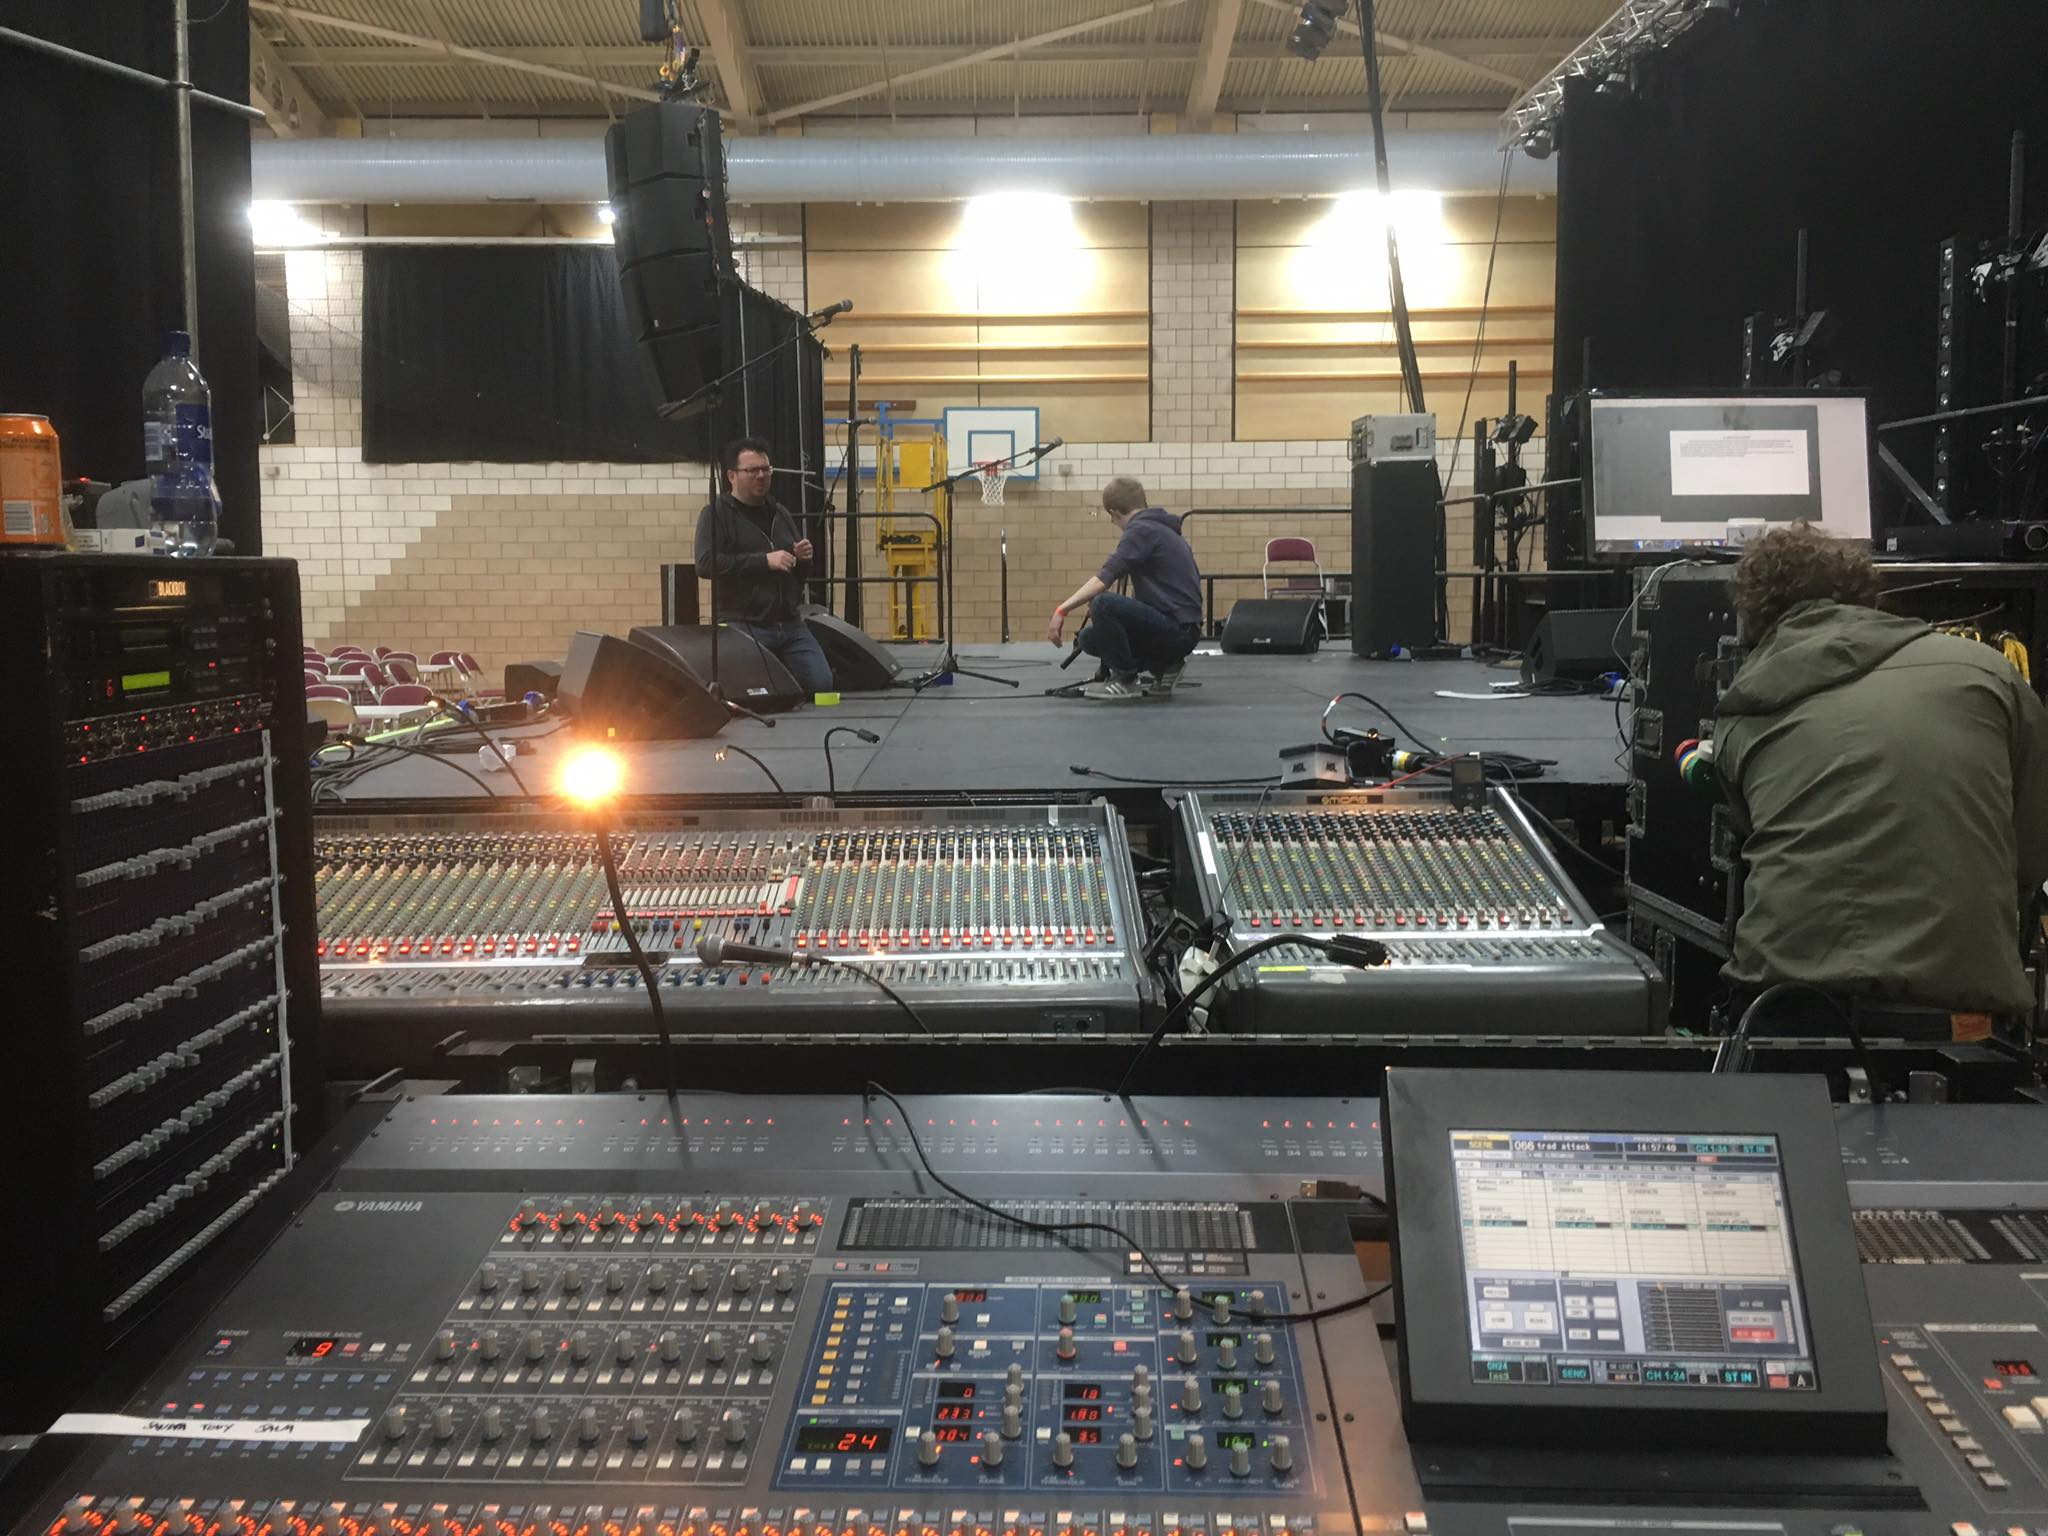 Setting up to record a live show at Shetland Folk Festival 2017